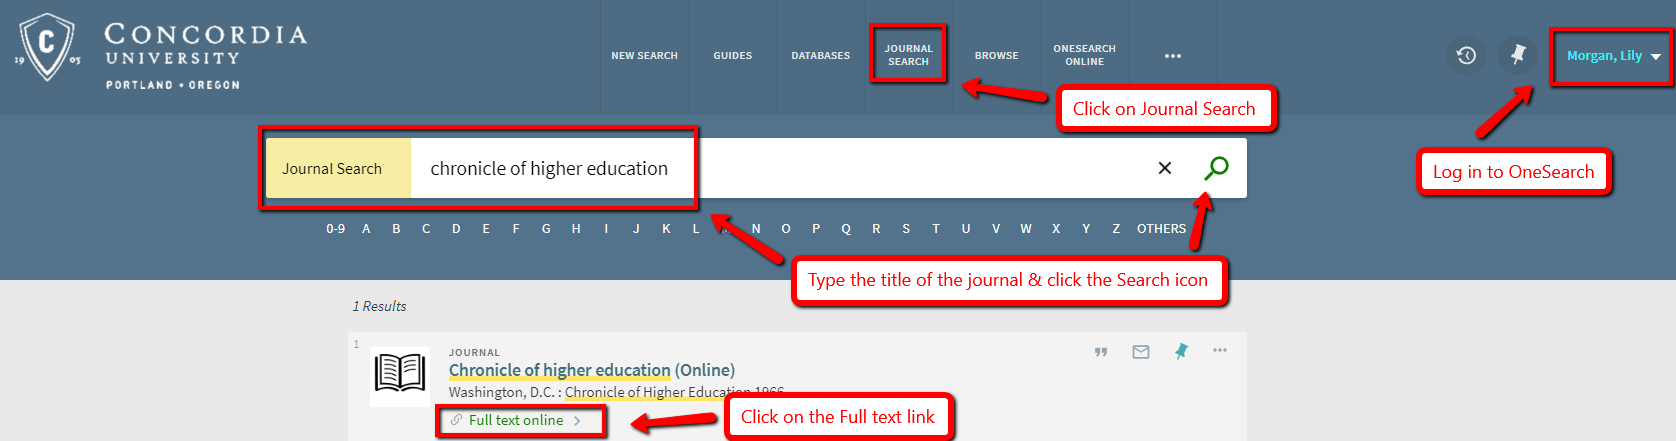 Screenshot of Journal Search screen and steps to find the Chronicle of Higher Education